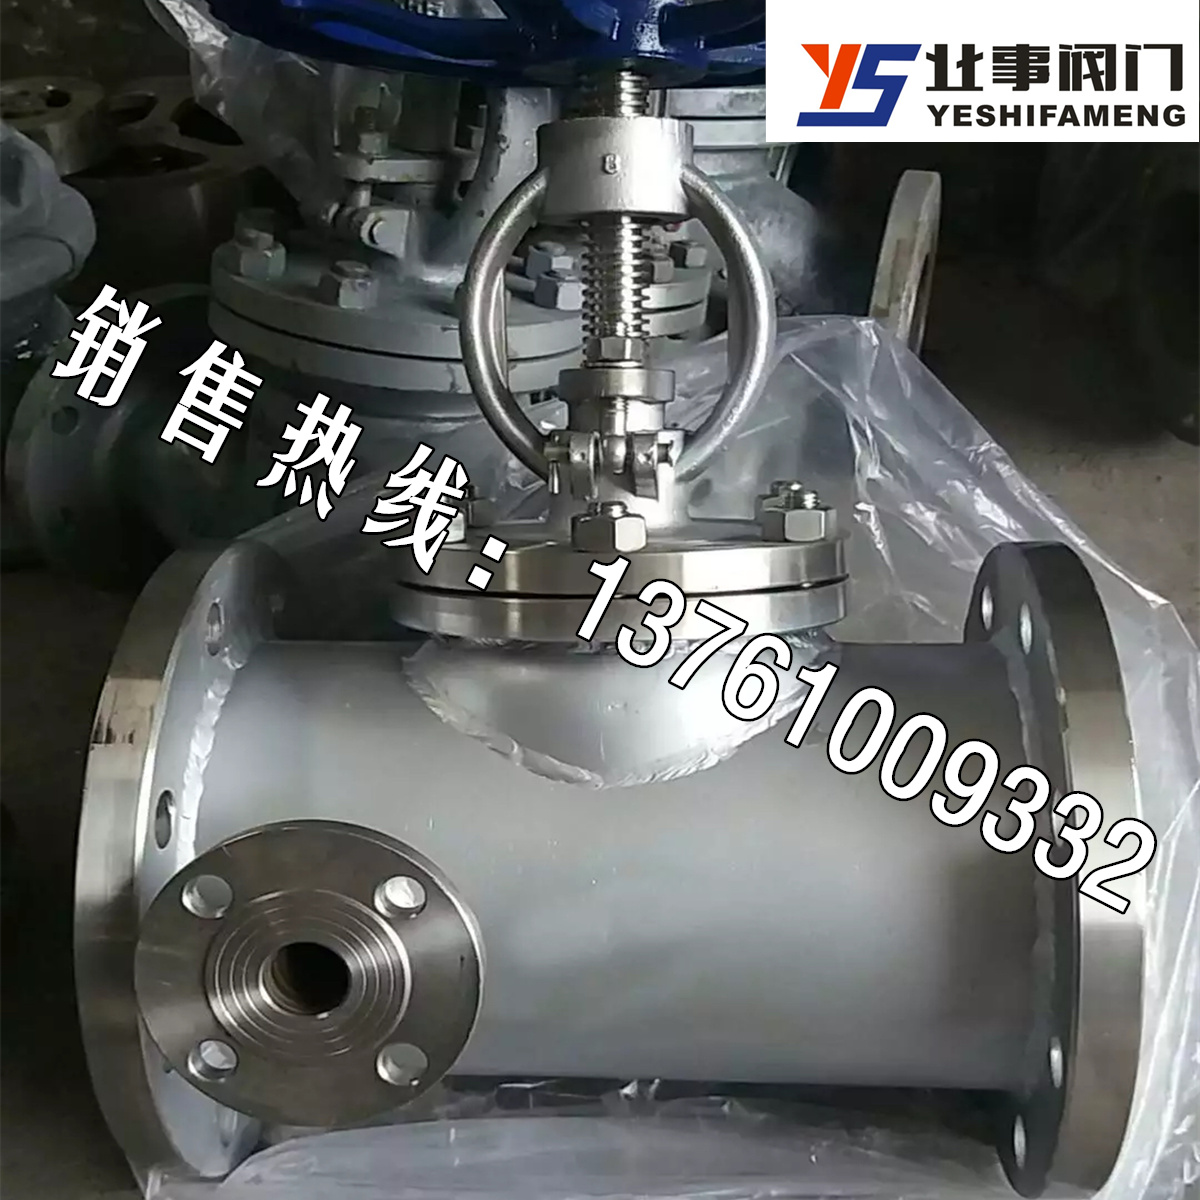 BZ41W-16P/25P chemical nitric acid corrosion resistant 304/316 stainless steel jacket insulation flange gate valve DN32